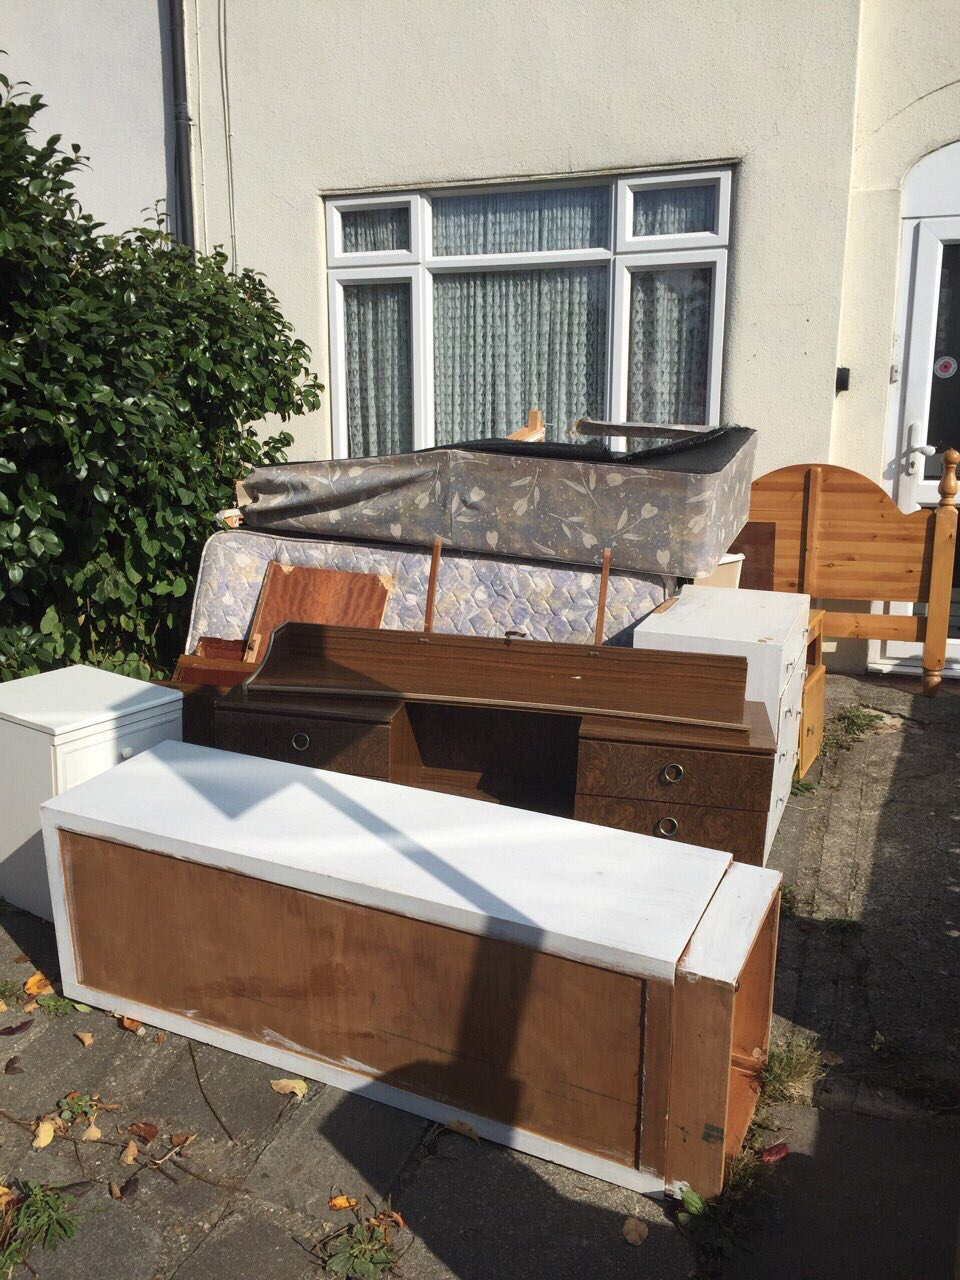 TW9 removal of waste Kew